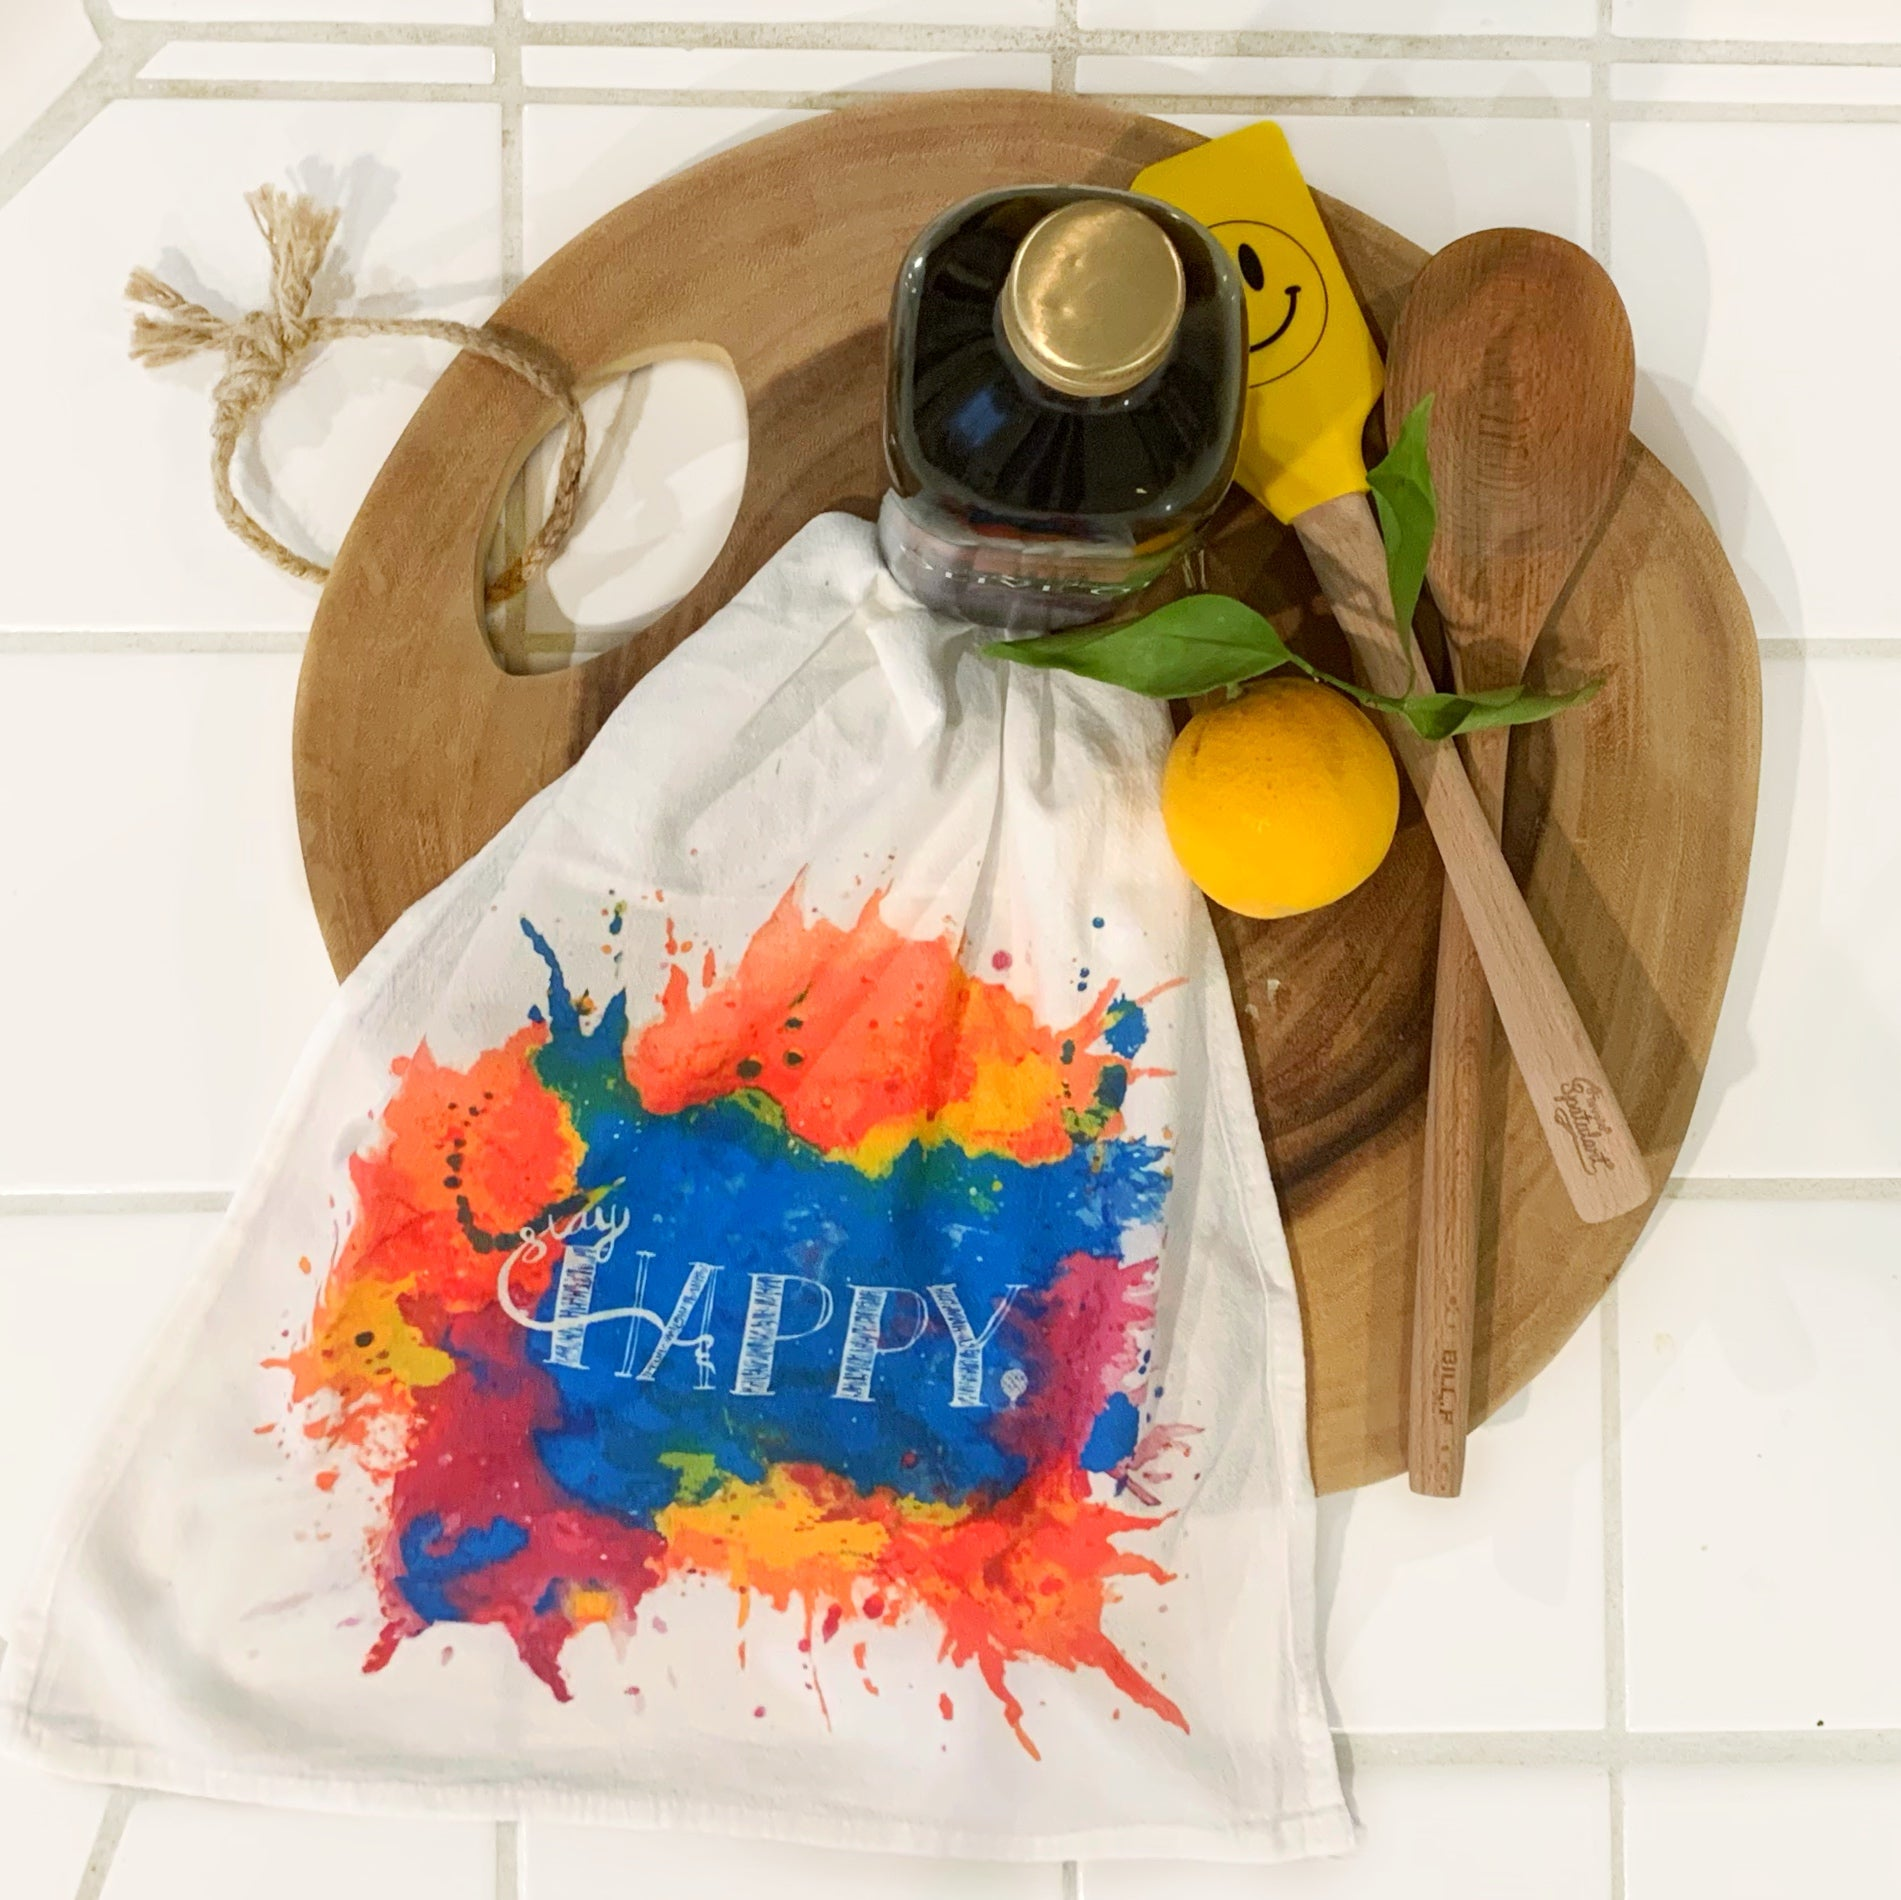 STAY HAPPY | flour sack dish towel